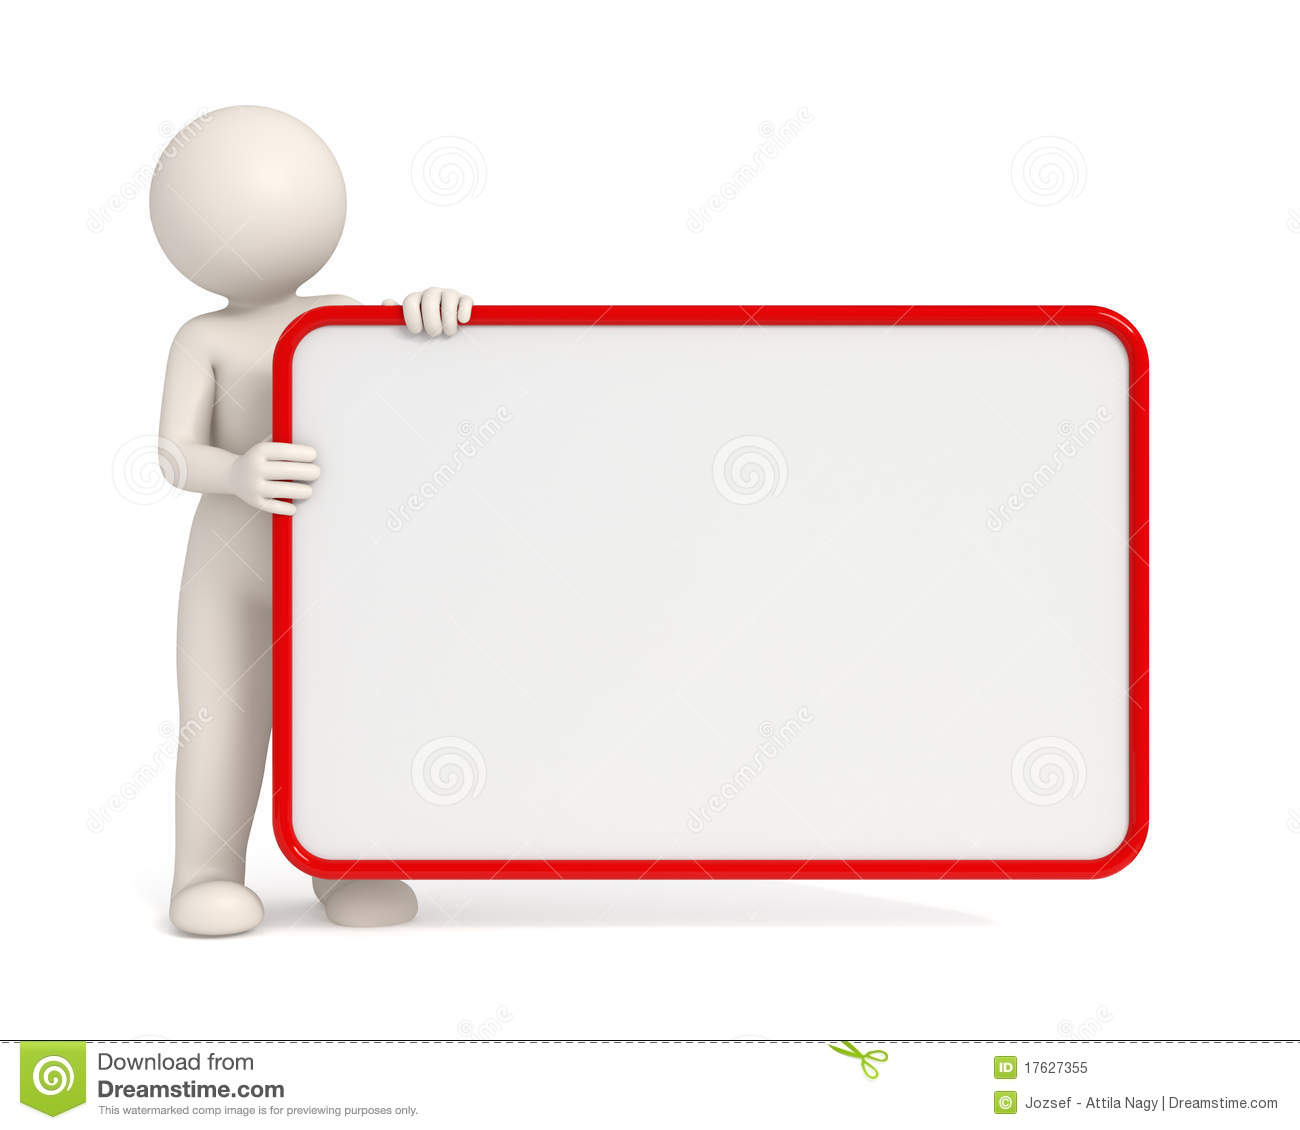 Royalty Free Stock Photo 3d Man Holding Empty Board Red Frame Image17627355 on Latest App To Write On Pictures